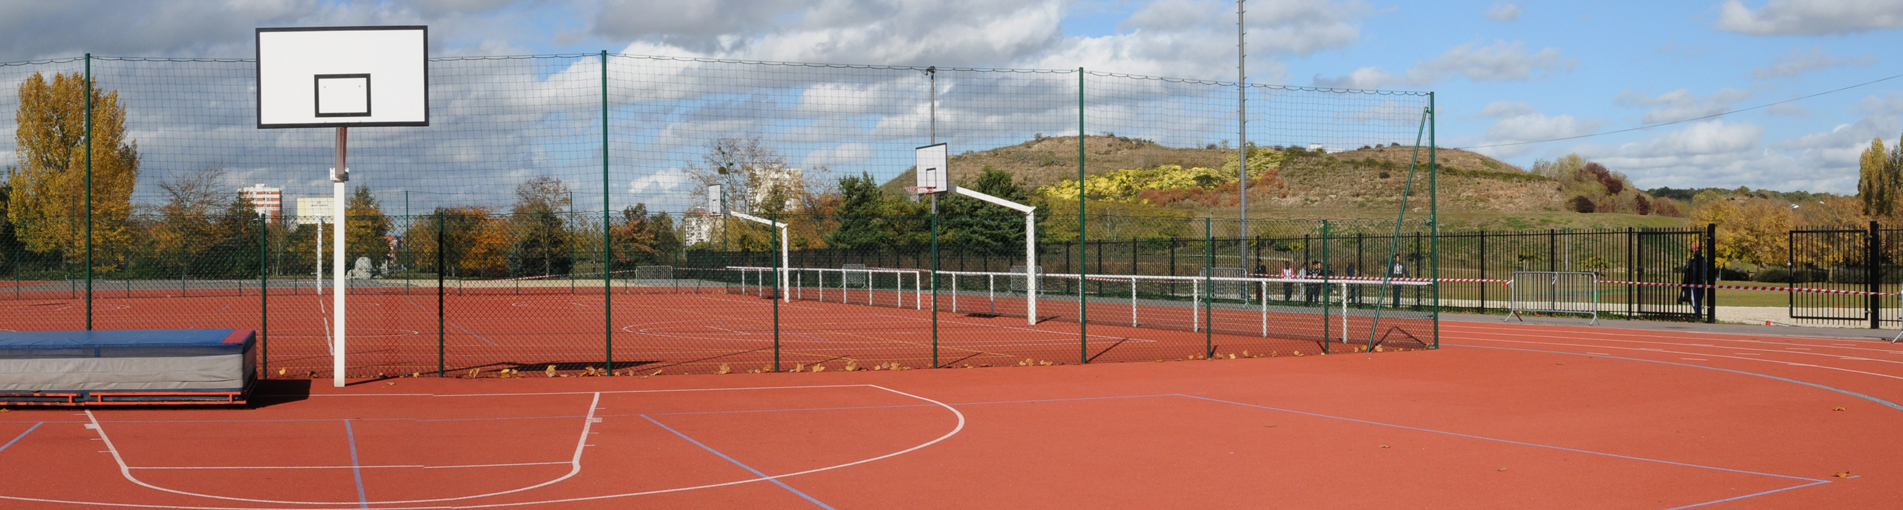 For Basketball Court Construction Cost